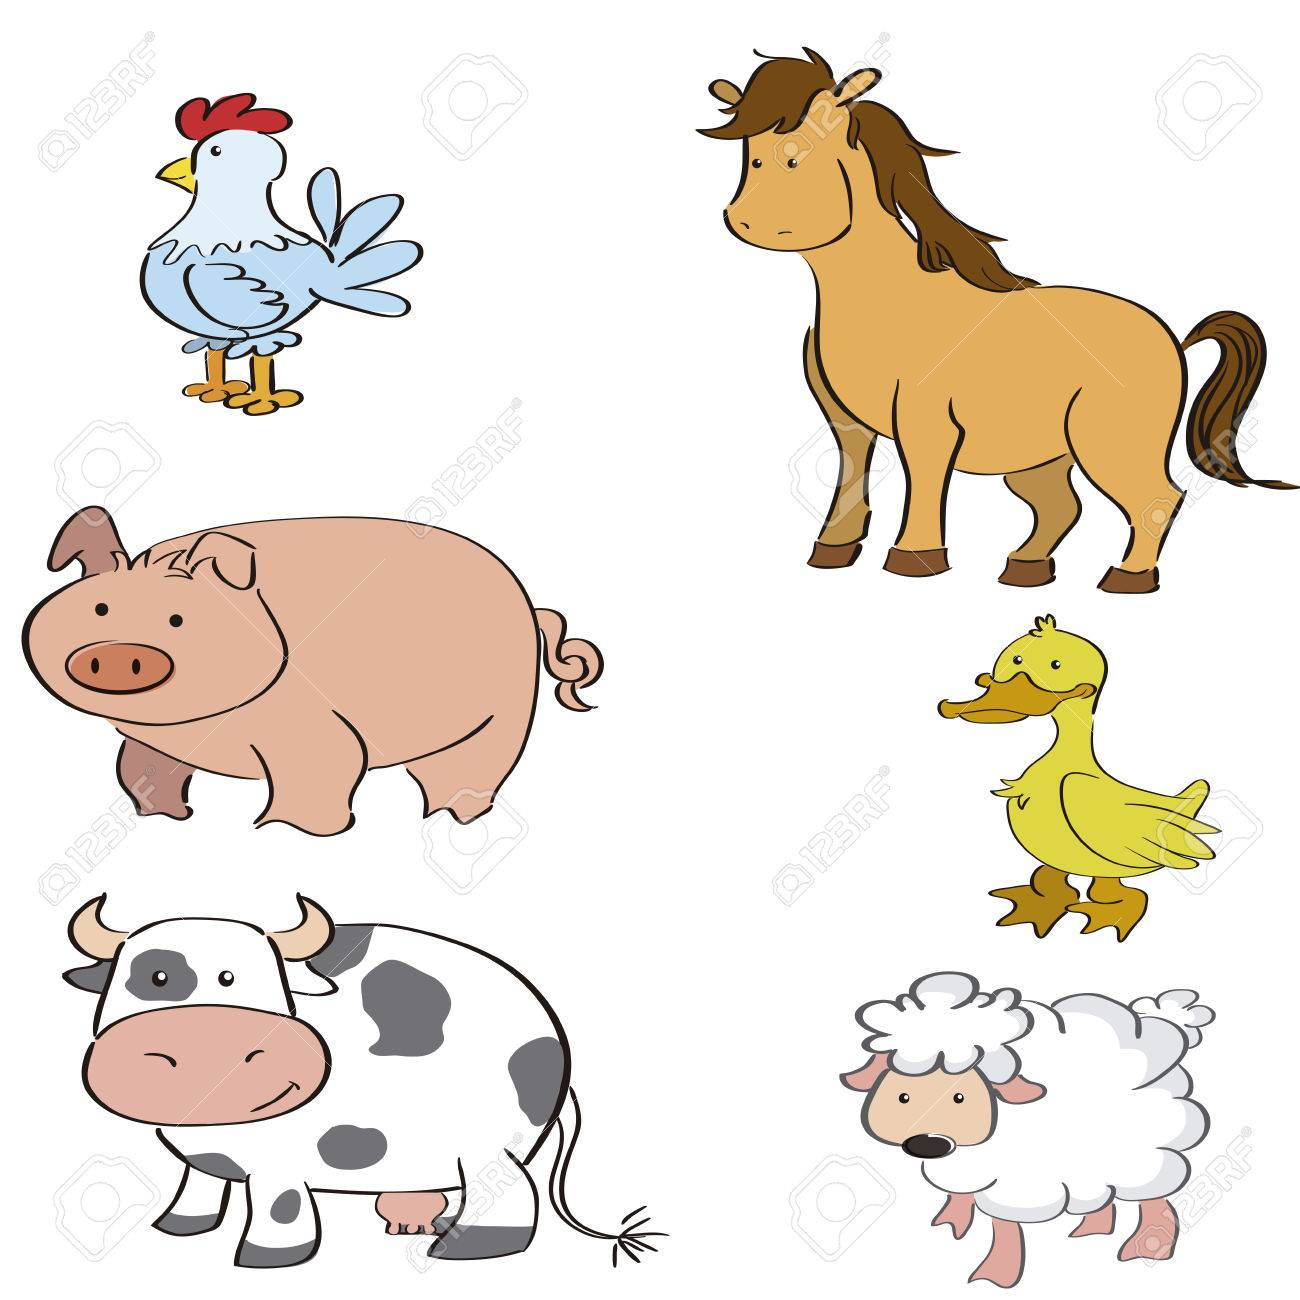 a set of different farm animals on a white background.